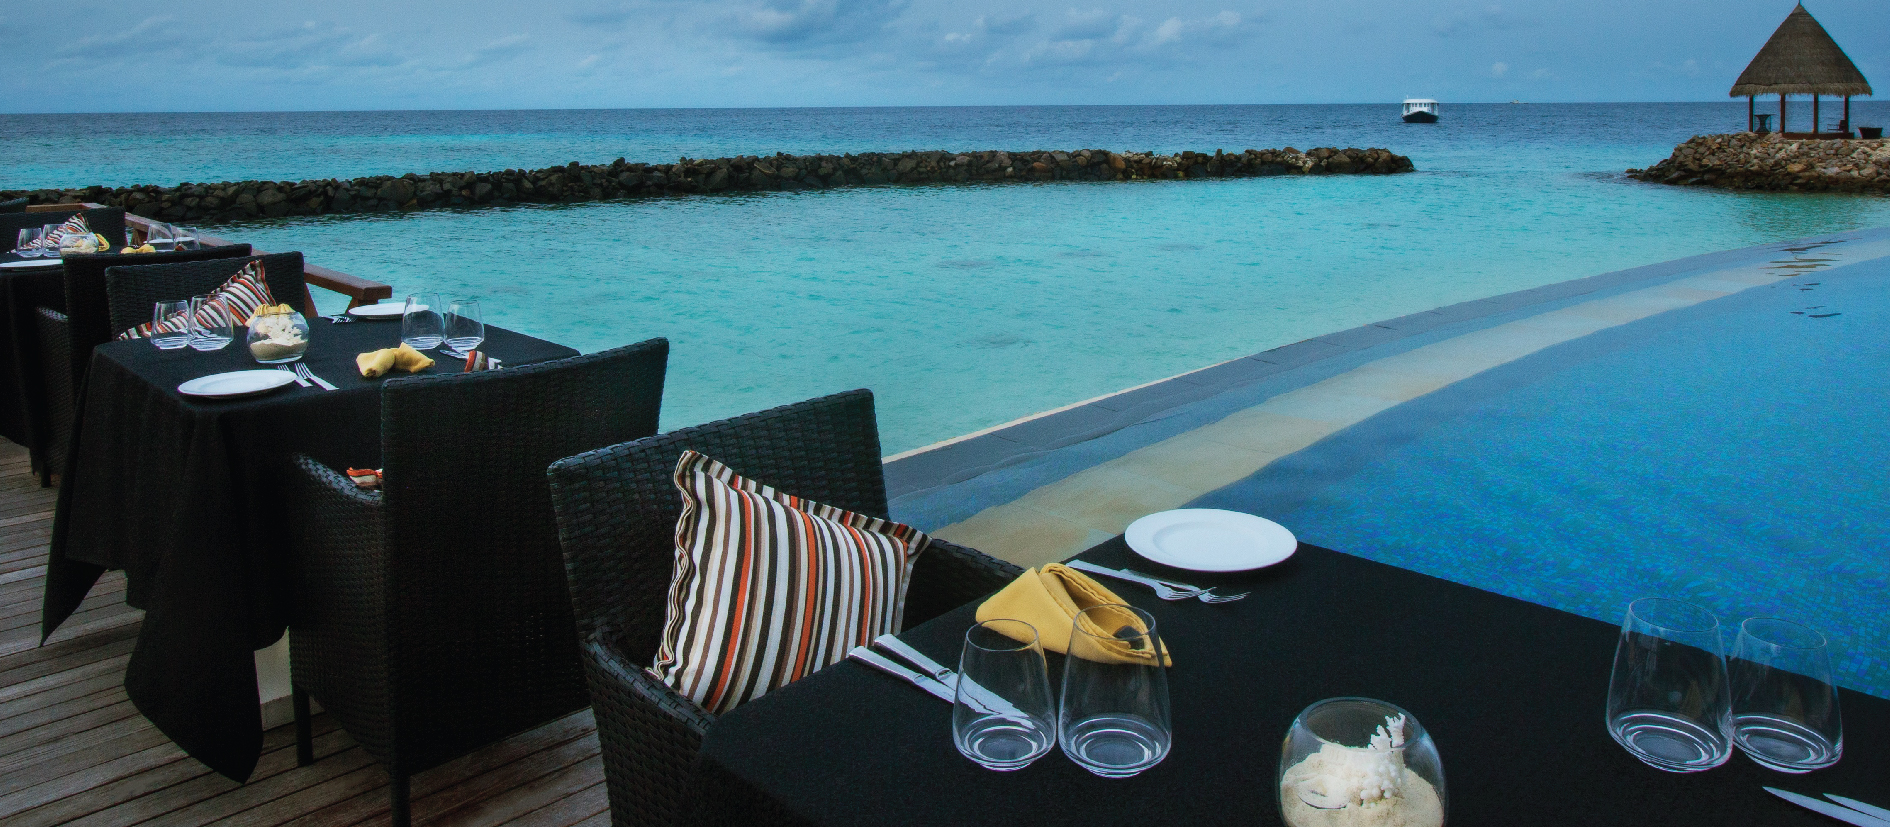 Pool Side Restaurant at Vivanta By Taj Coral Reef, Maldives - 16x7